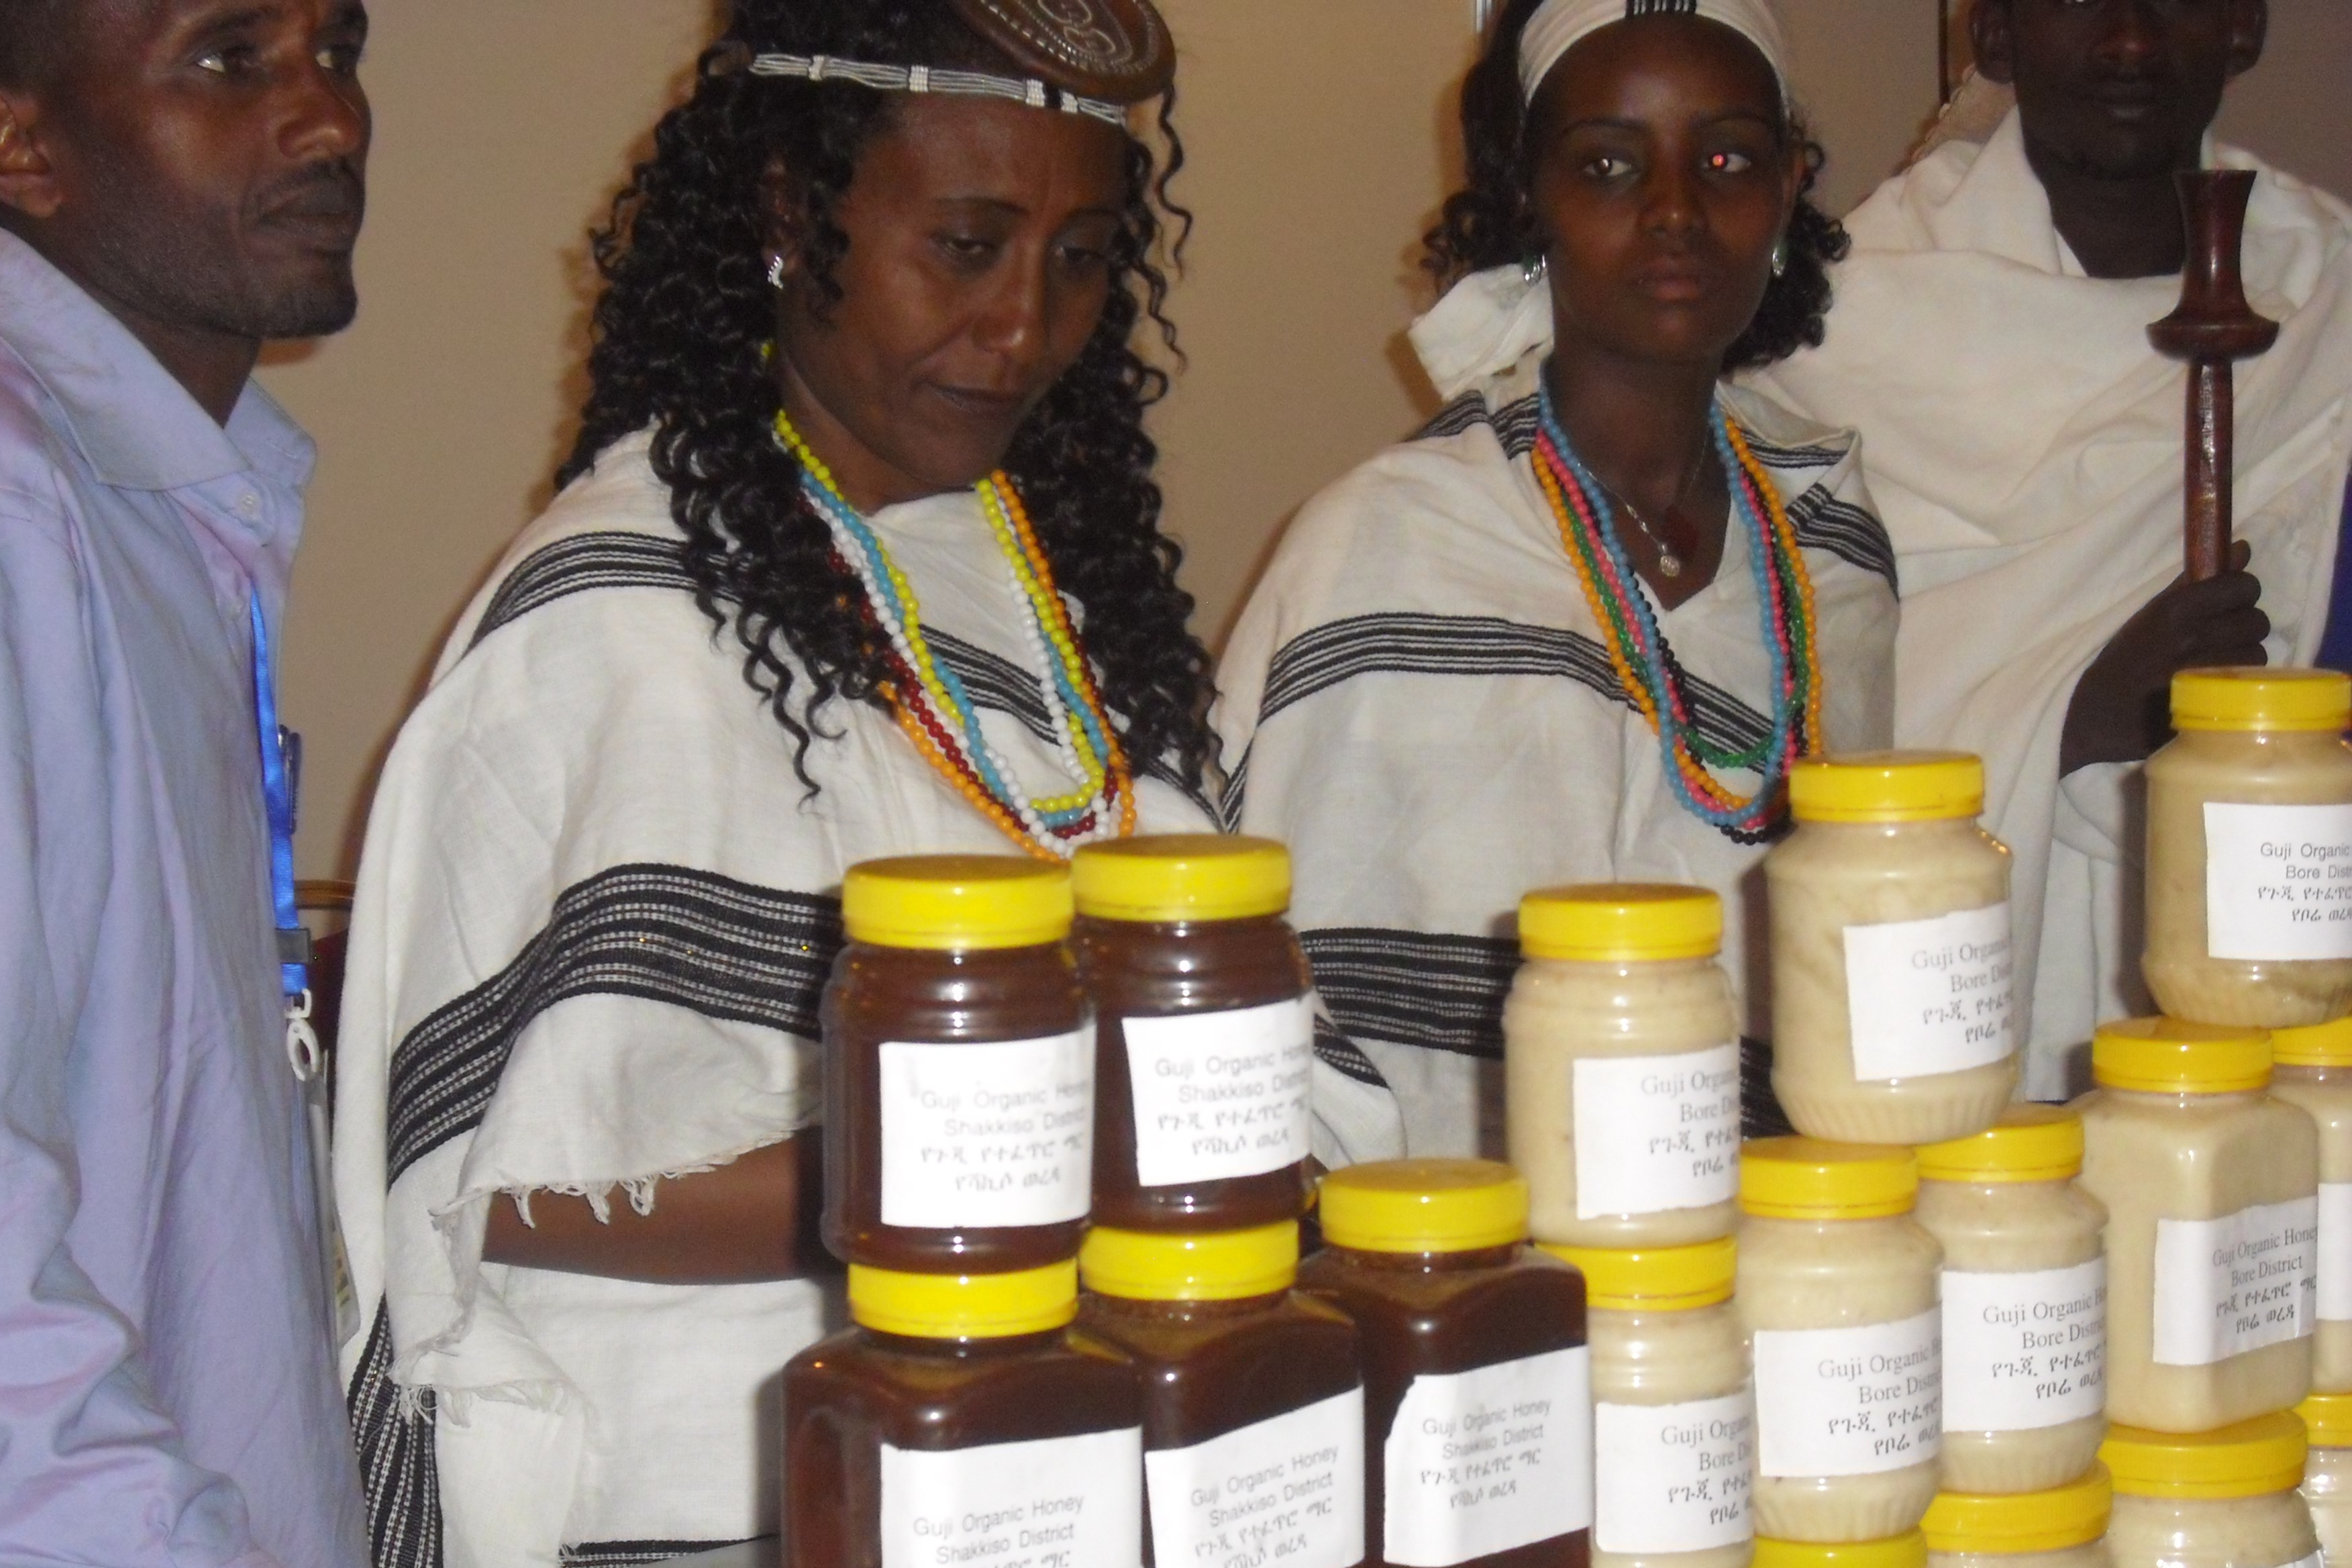 Ethiopian beekeepers exhibiting their honey products at the Api Africa Expo.